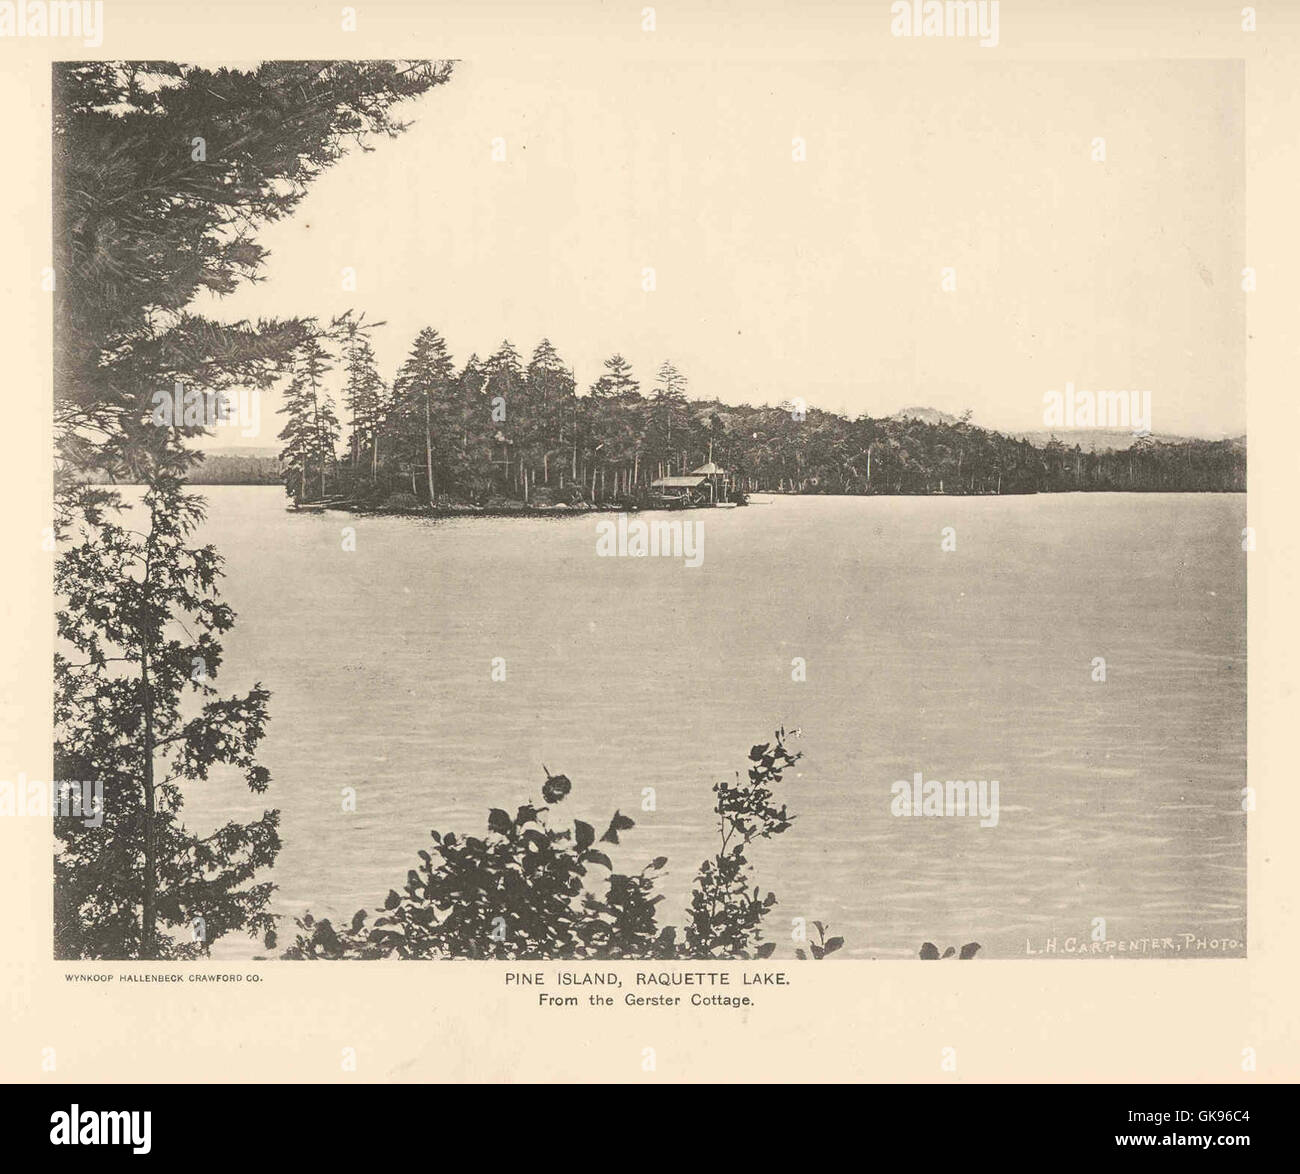 43067 Pine Island, Raquette Lake From the Gerster Cottage - Stock Image